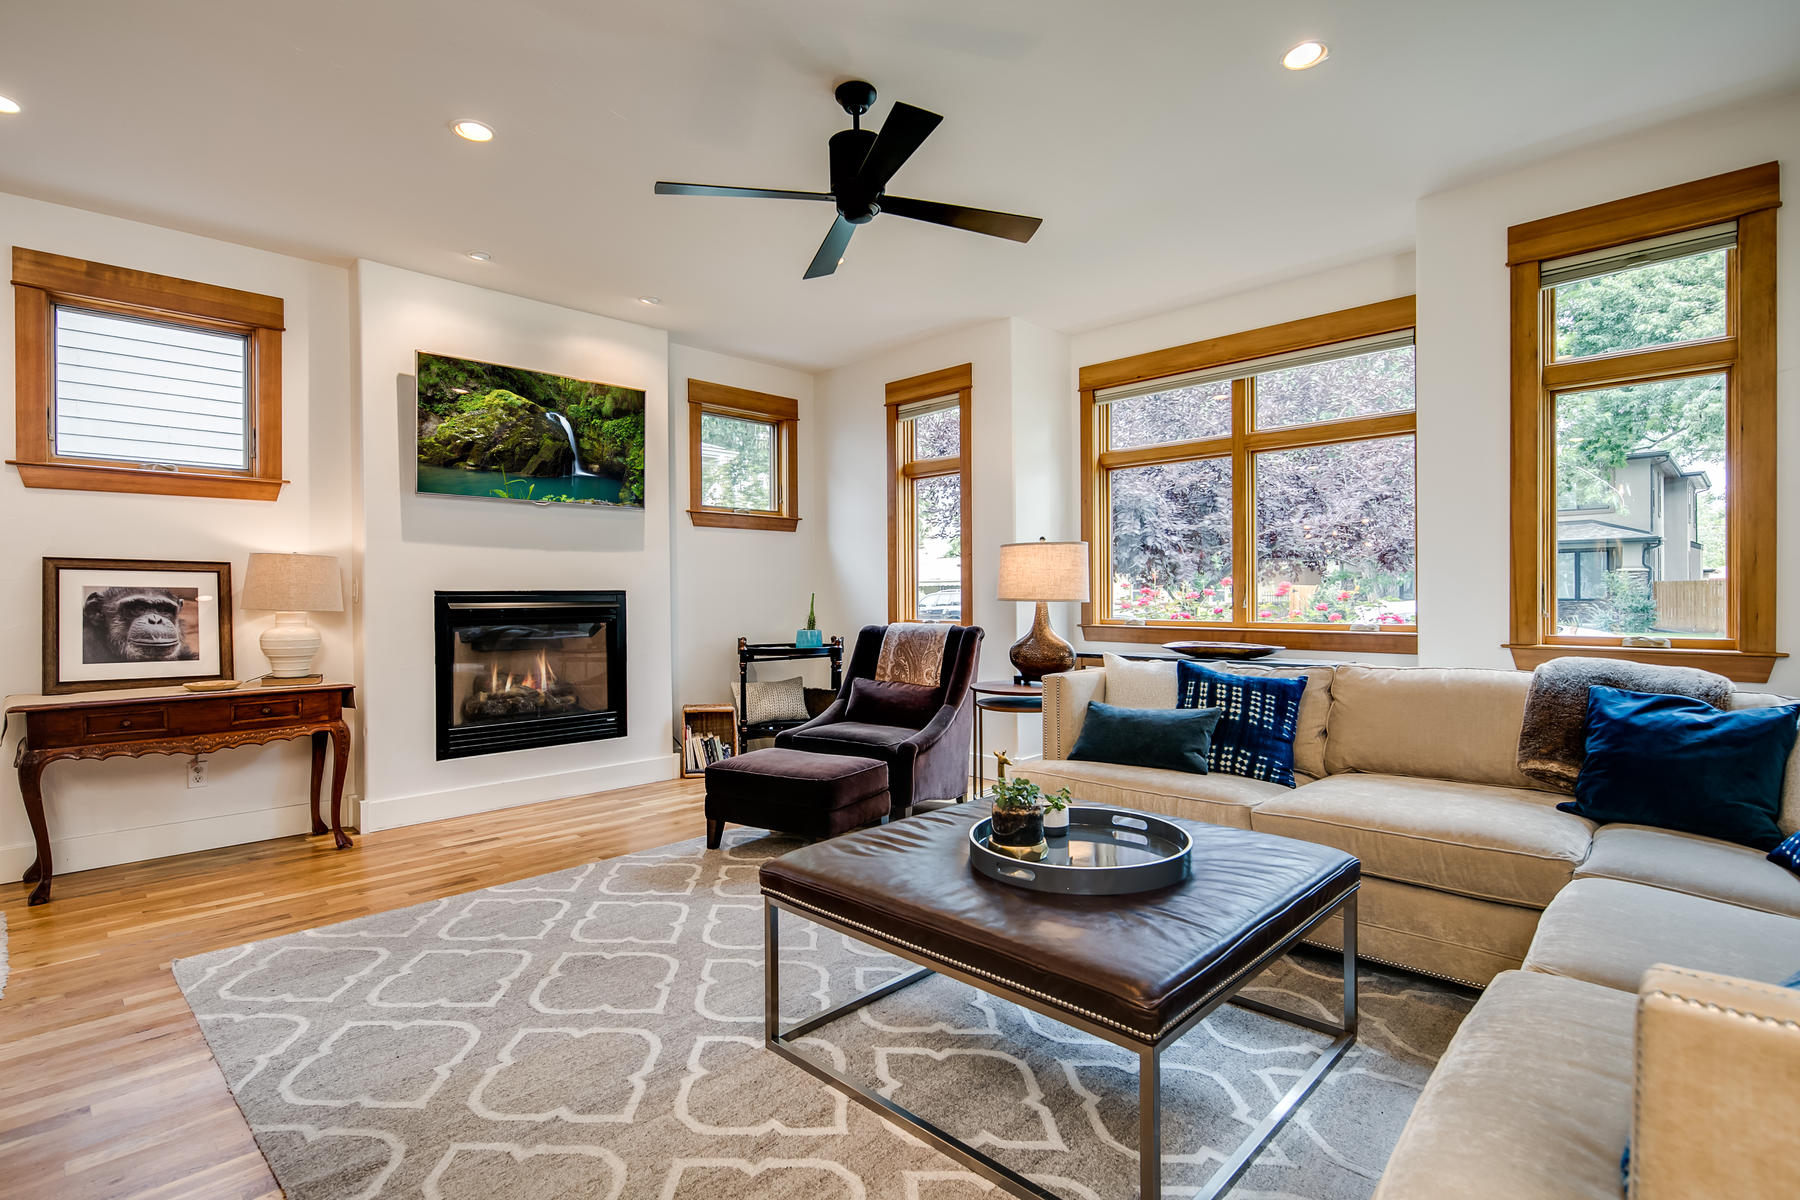 Additional photo for property listing at Fabulous Open Layout With Views Of The City, Mountains, and Sloans Lake 2034 Newton St Denver, Colorado 80211 United States